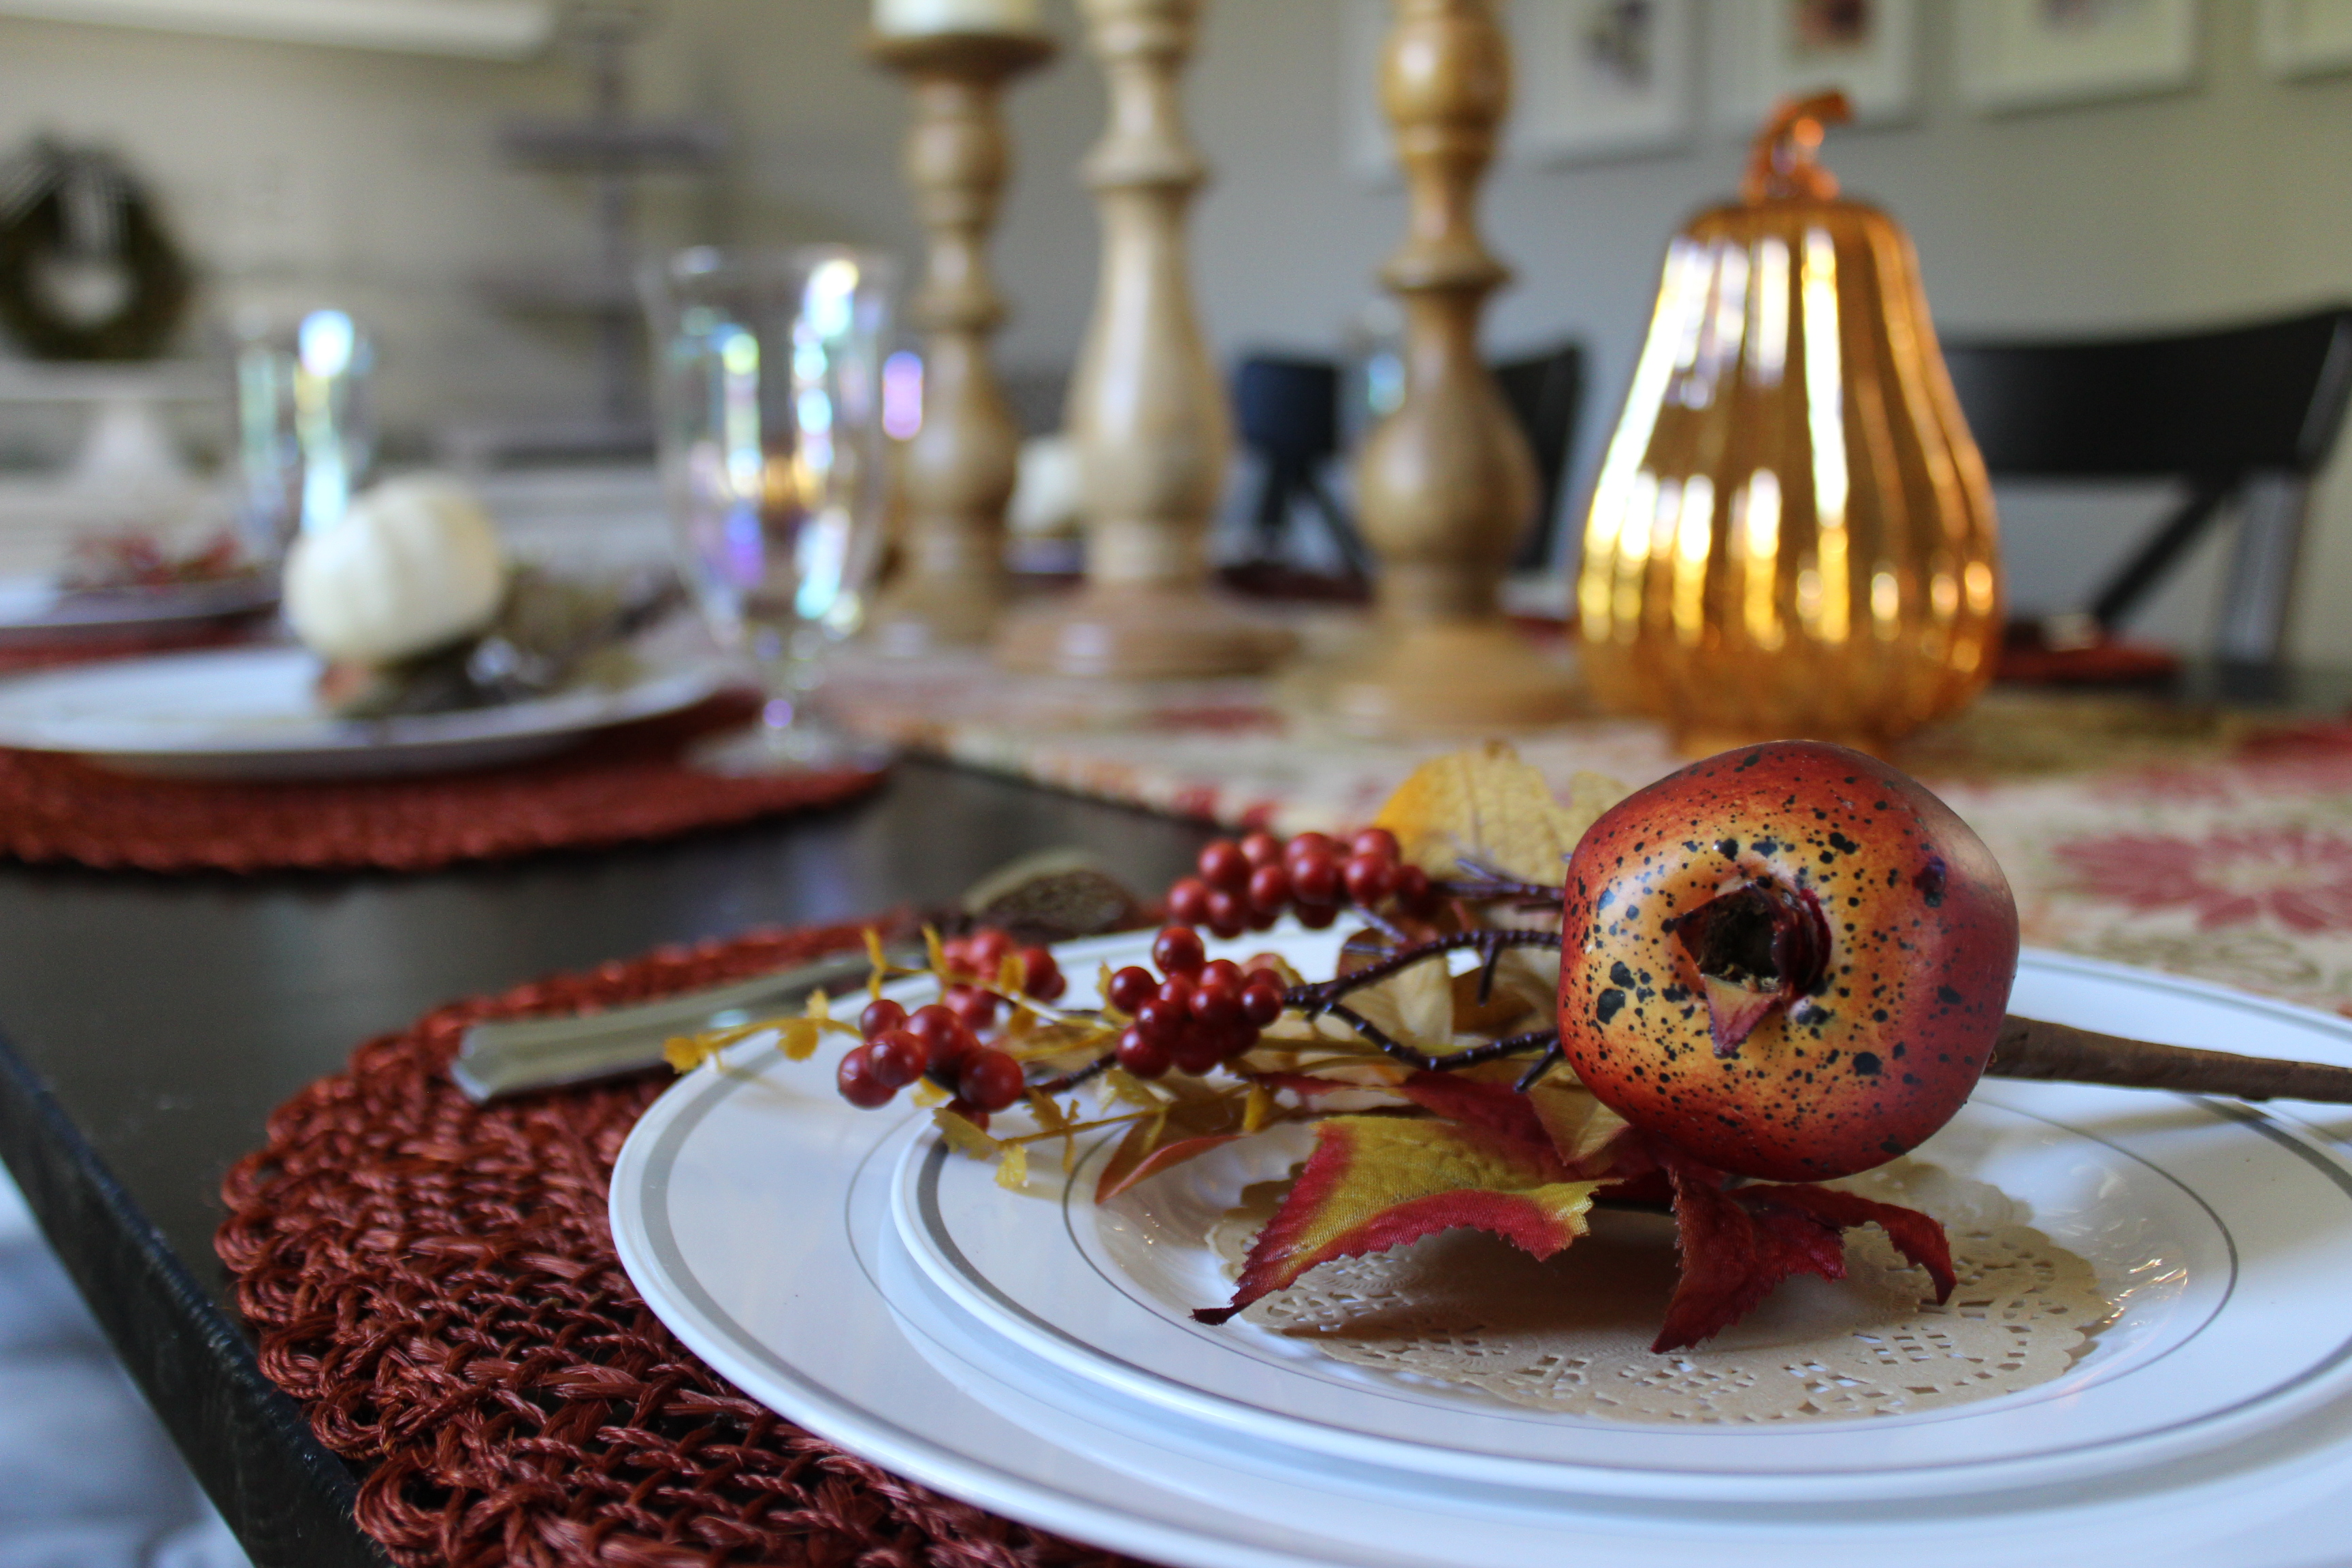 Use deep reds and other fall colors for your Thanksgiving table decore